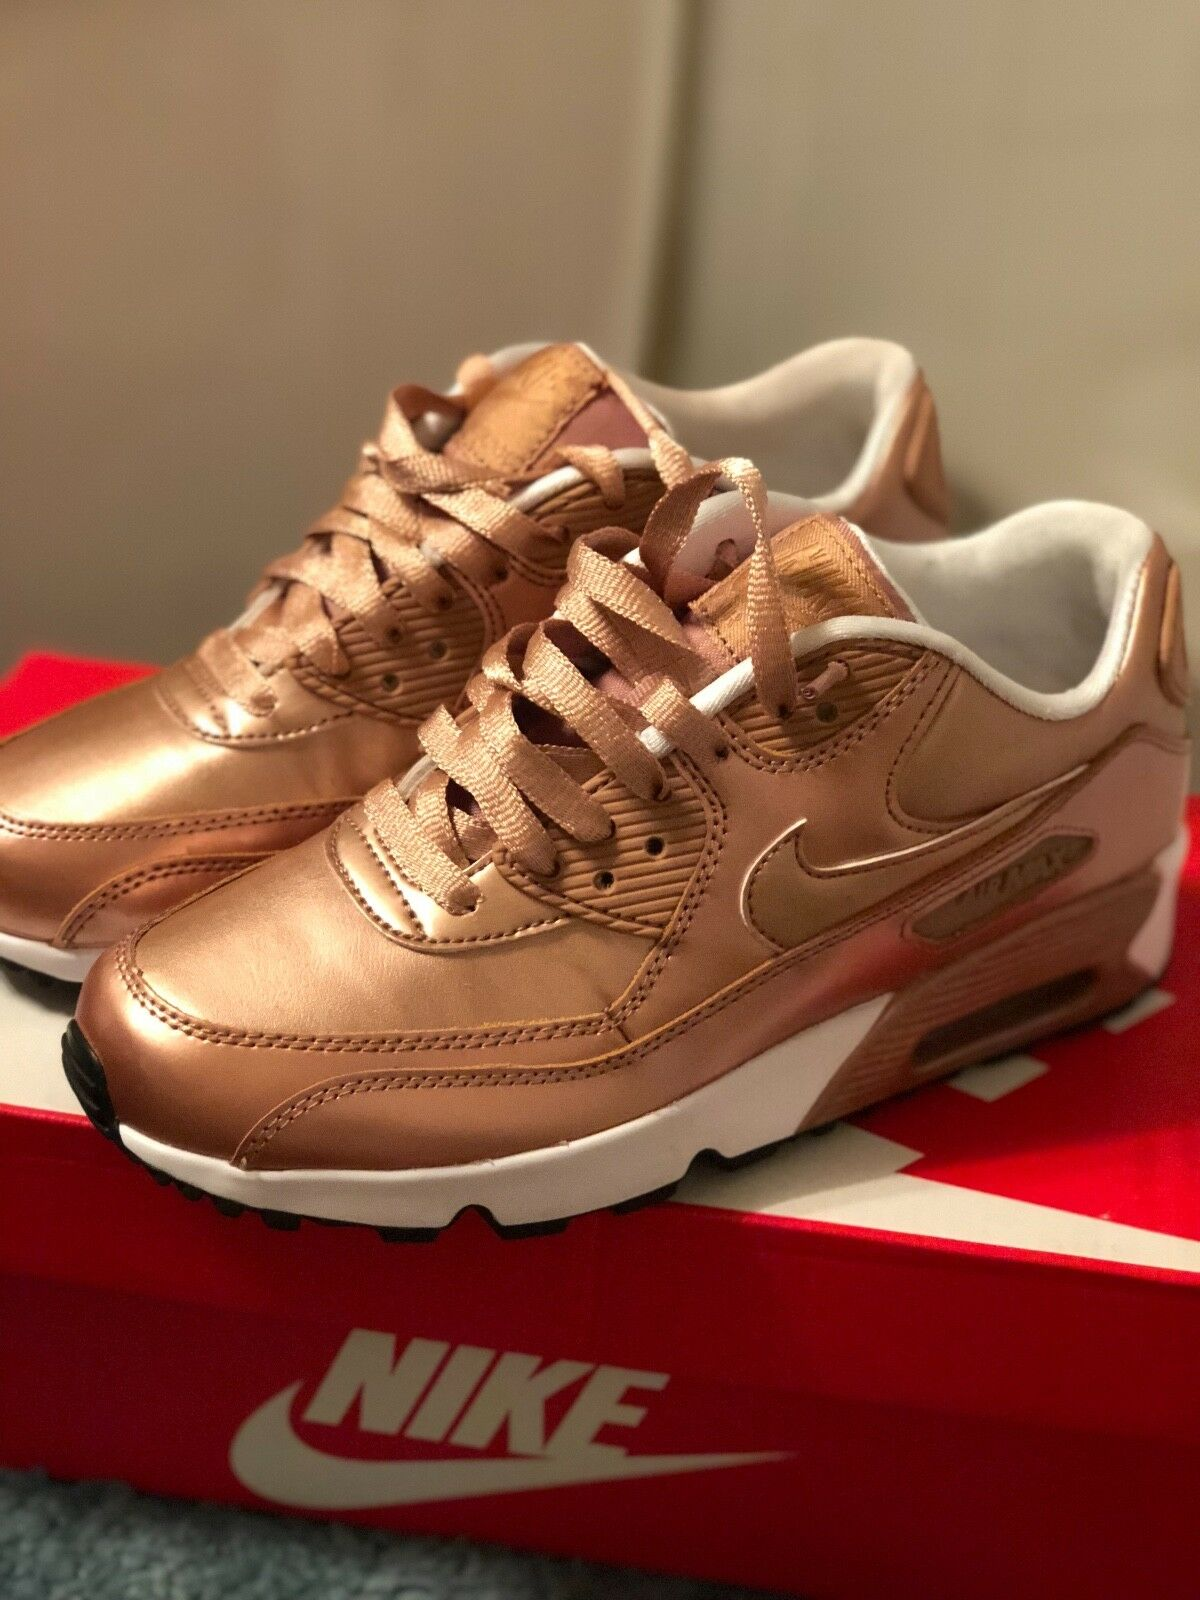 Nike air max 90 youth size 5Y gold